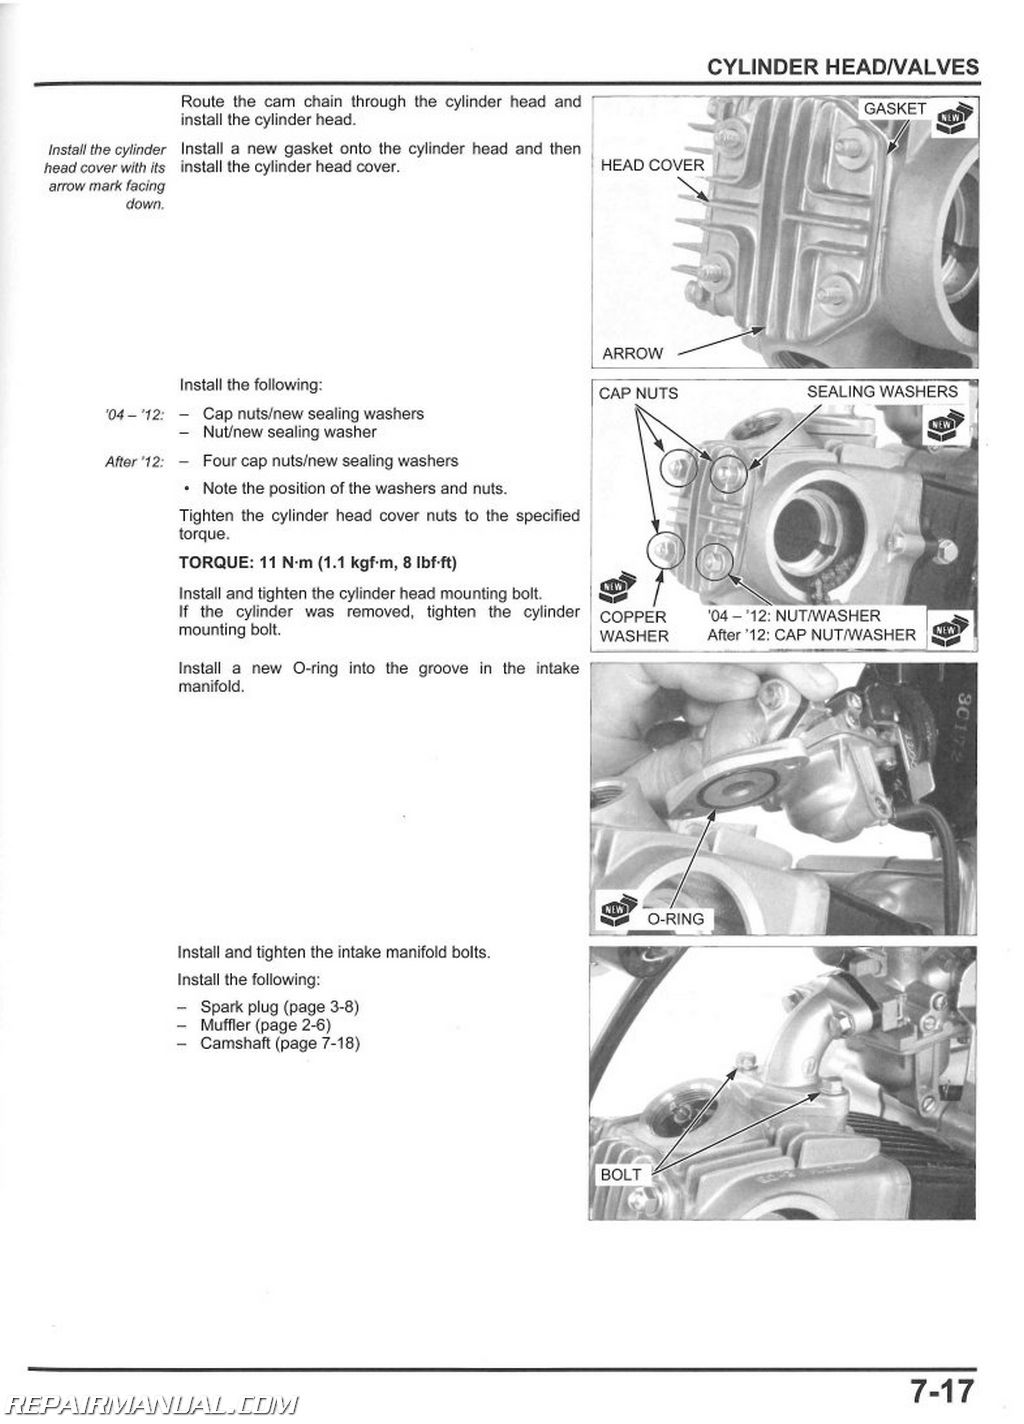 Honda Crf50f Motorcycle Service Manual